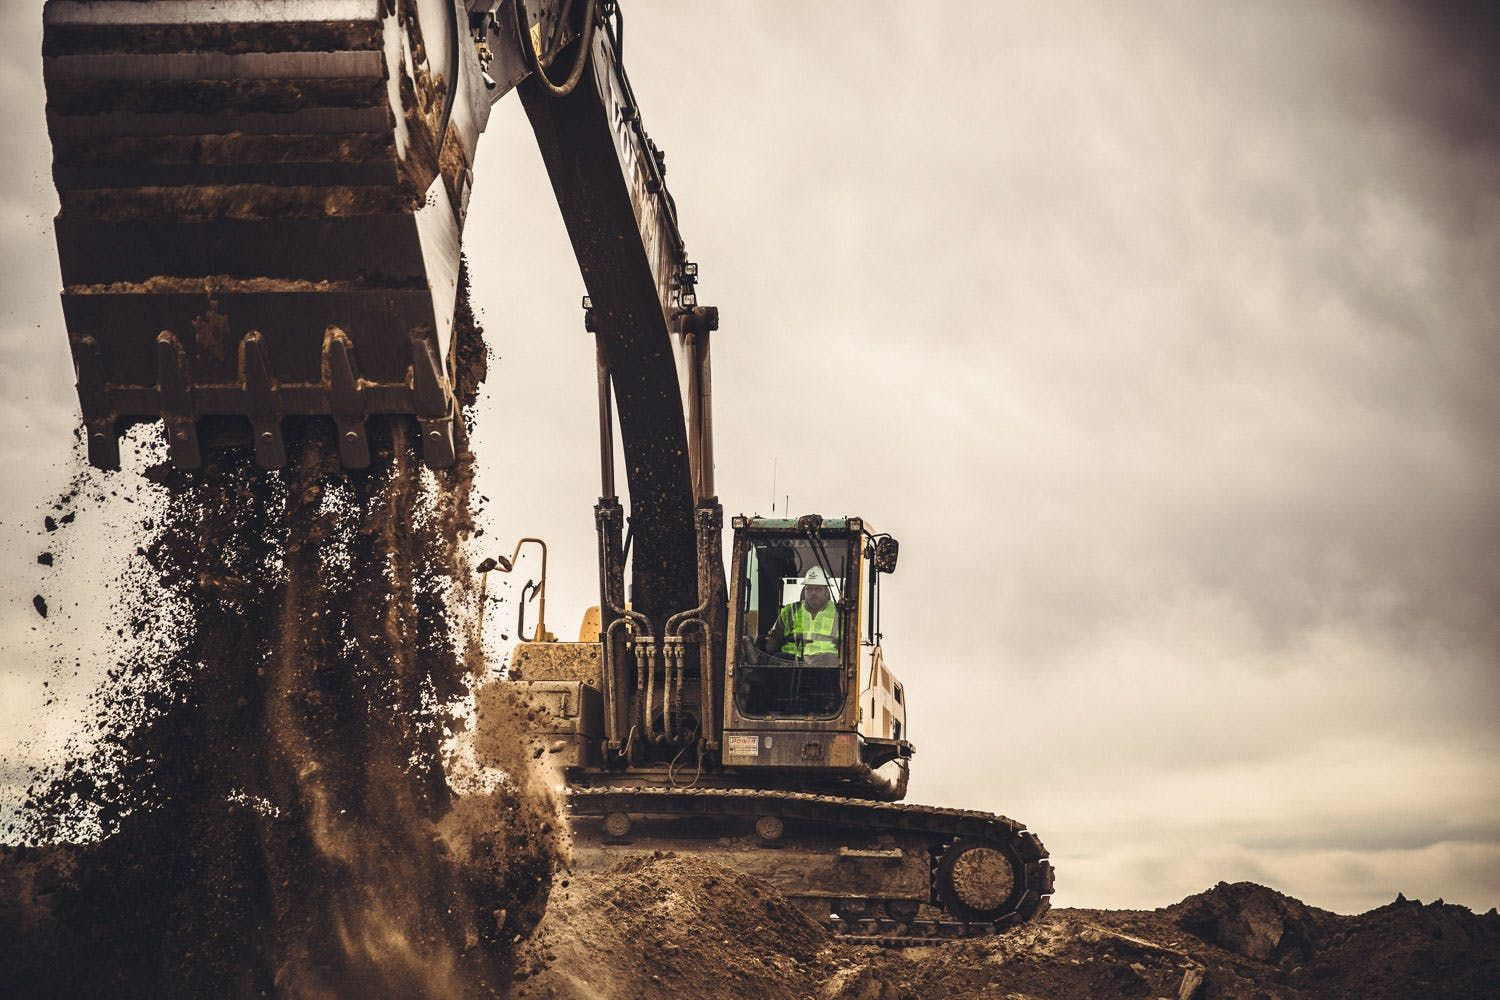 Image of an excavator